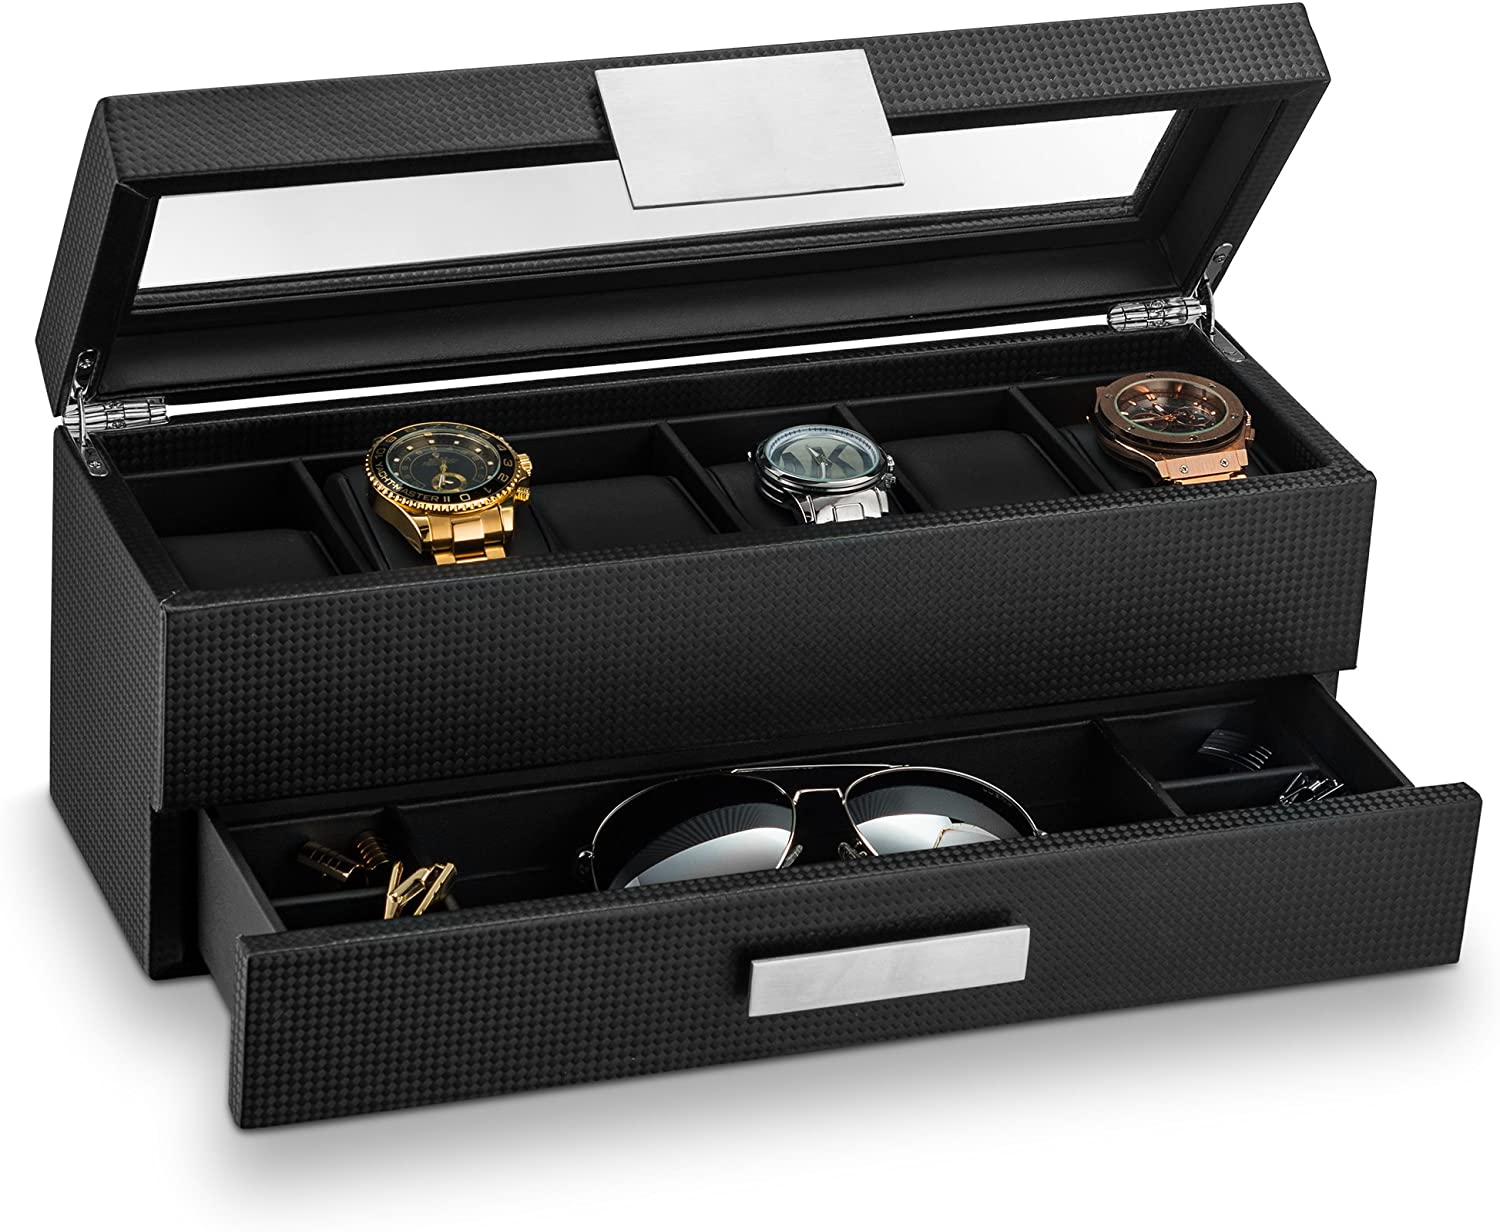 Glenor Co Watch Box with Valet Drawer for Men - 6 Slot Luxury Watch Case Display Organizer, Carbon Fiber Design -Metal Buckle for Mens Jewelry Watches, Men's Storage Holder Boxes has a Large Glass Top: Home & Kitchen